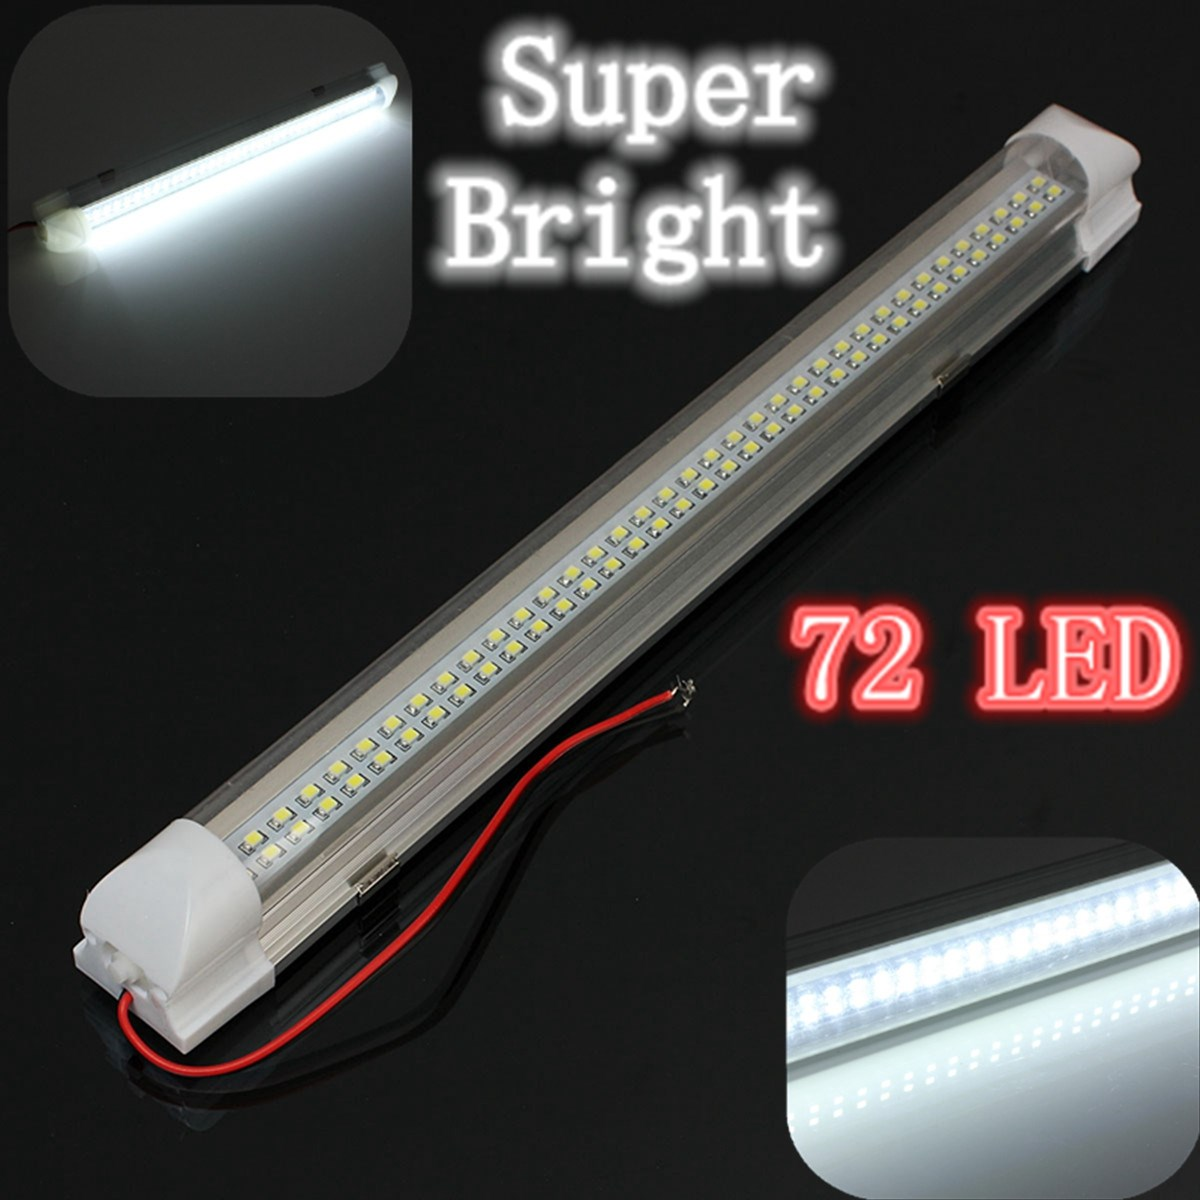 12v universal car auto caravan interior 72 led white light strip bar 12v universal car auto caravan interior 72 led white light strip bar 340mm lamp onoff switch in signal lamp from automobiles motorcycles on aloadofball Images